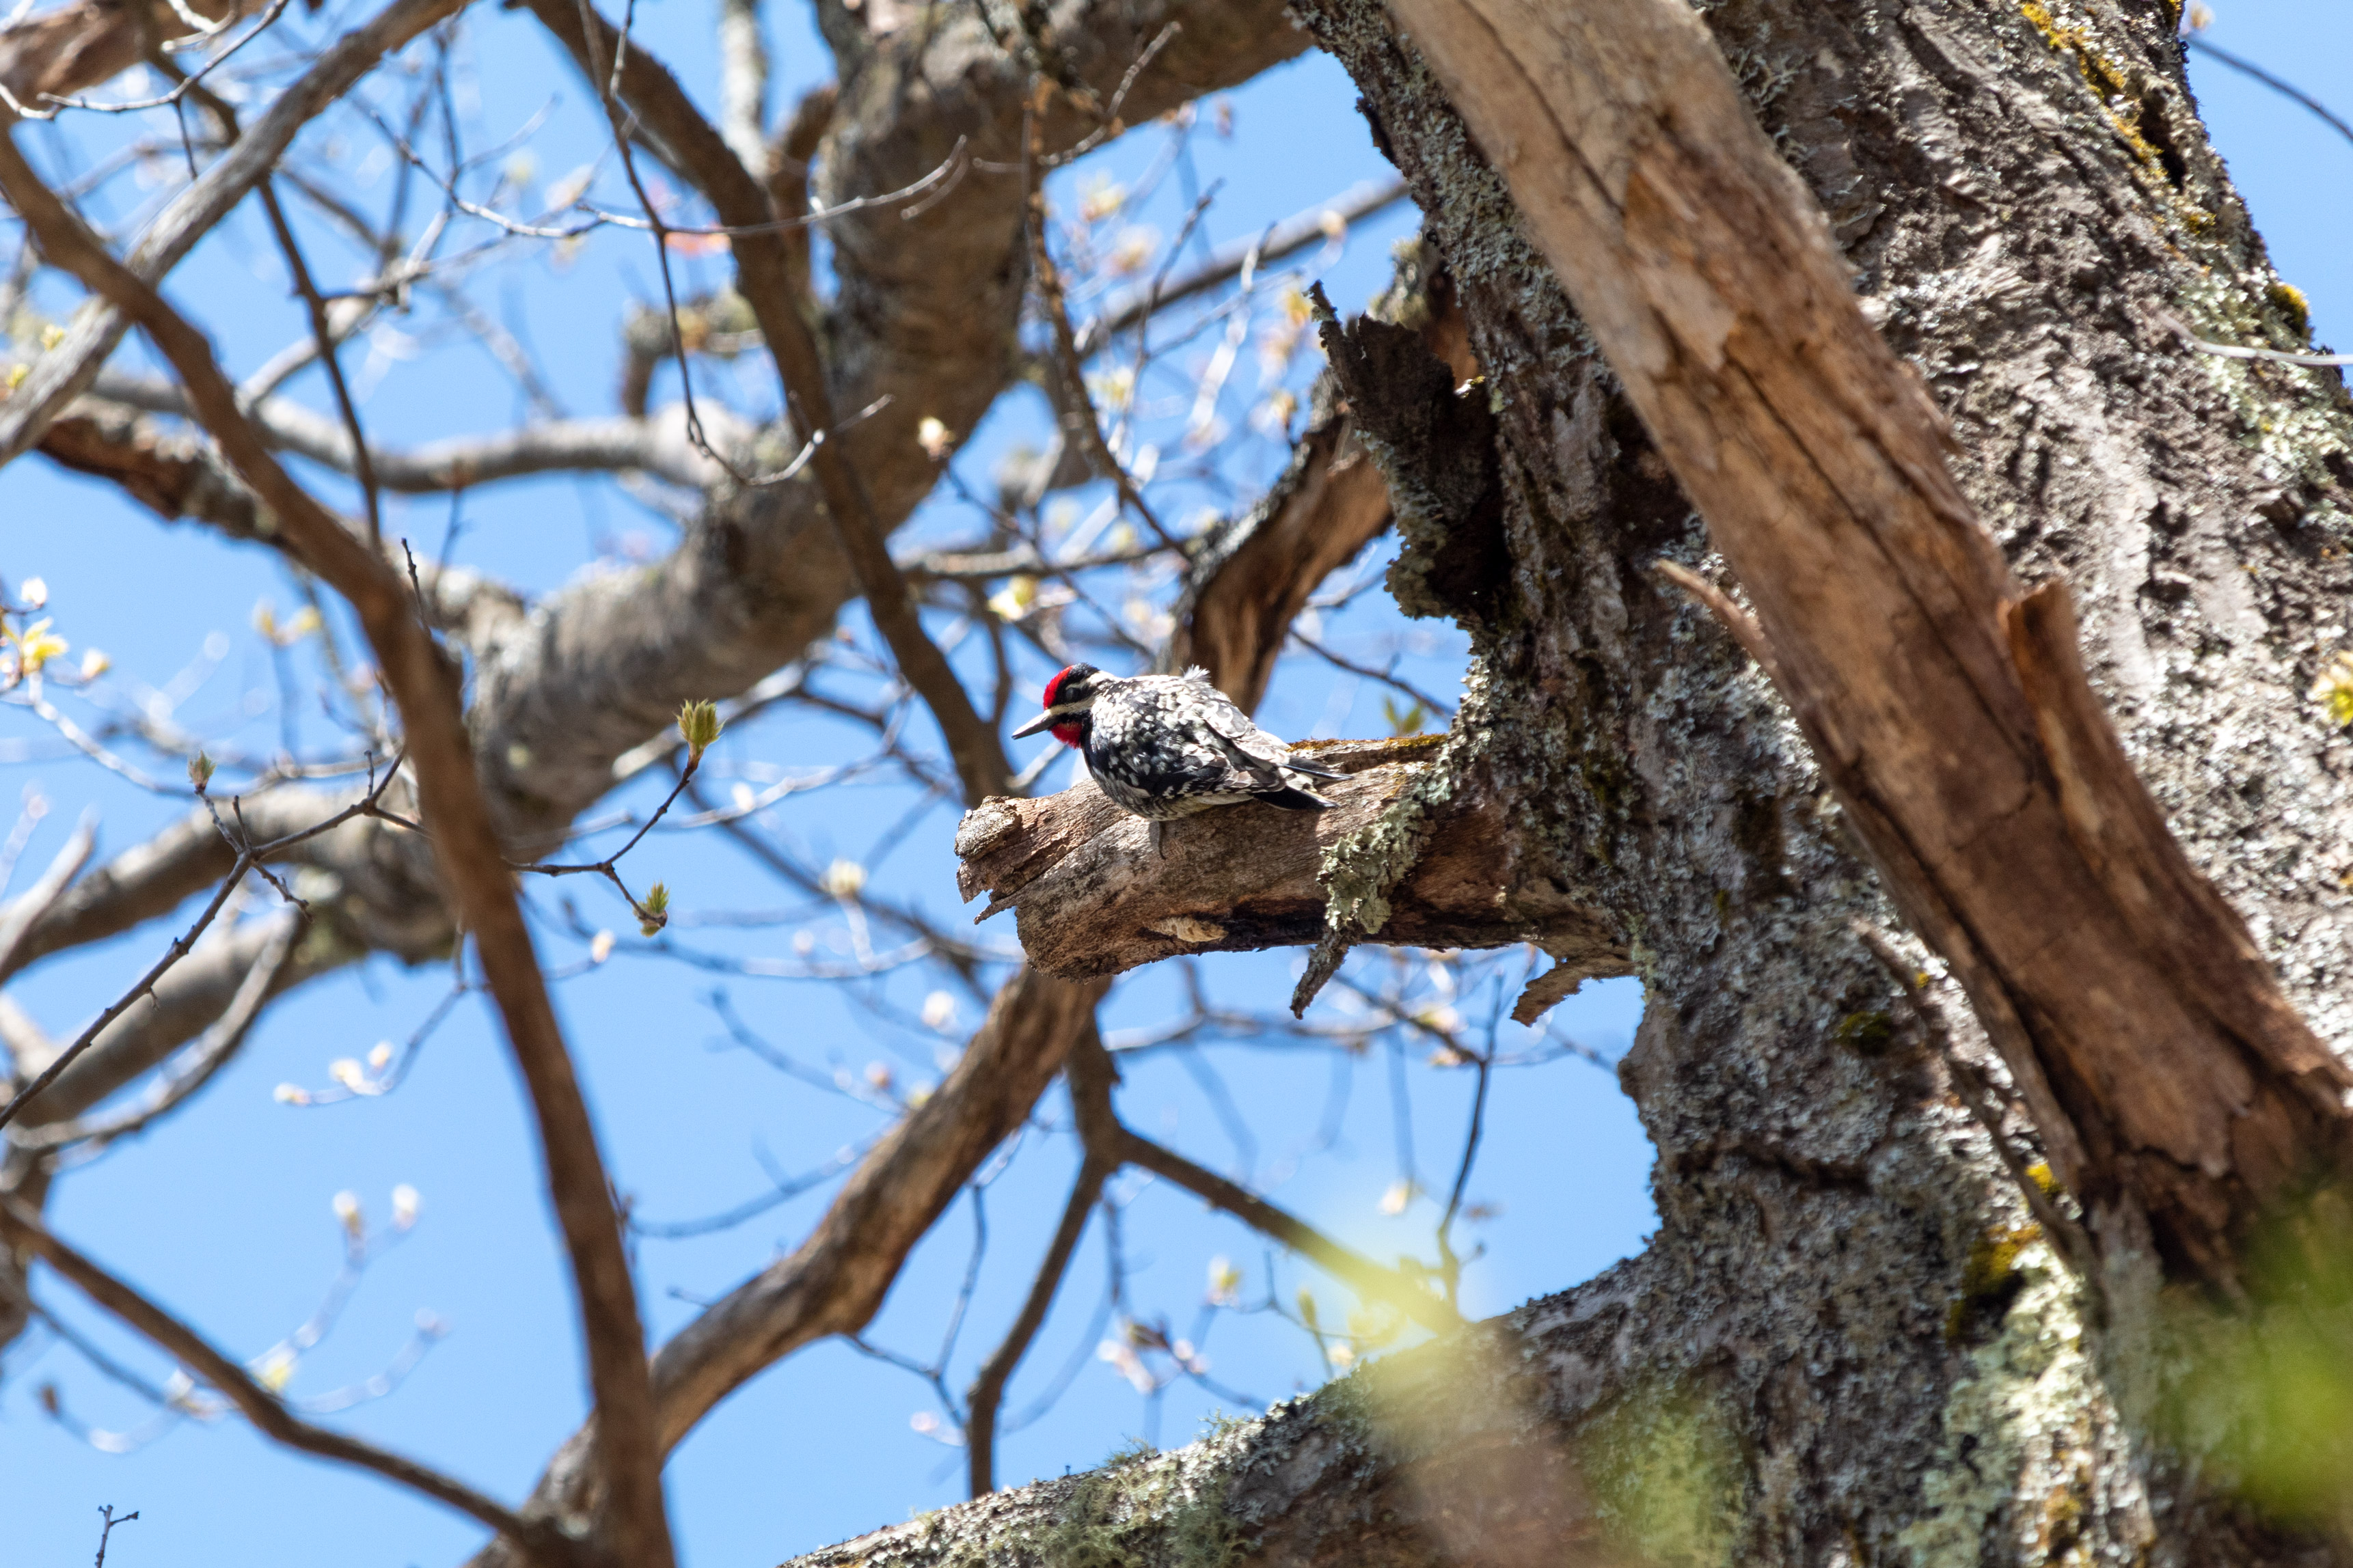 Woodpecker with white spots and a red tuft on the top of its head sitting on a tree branch